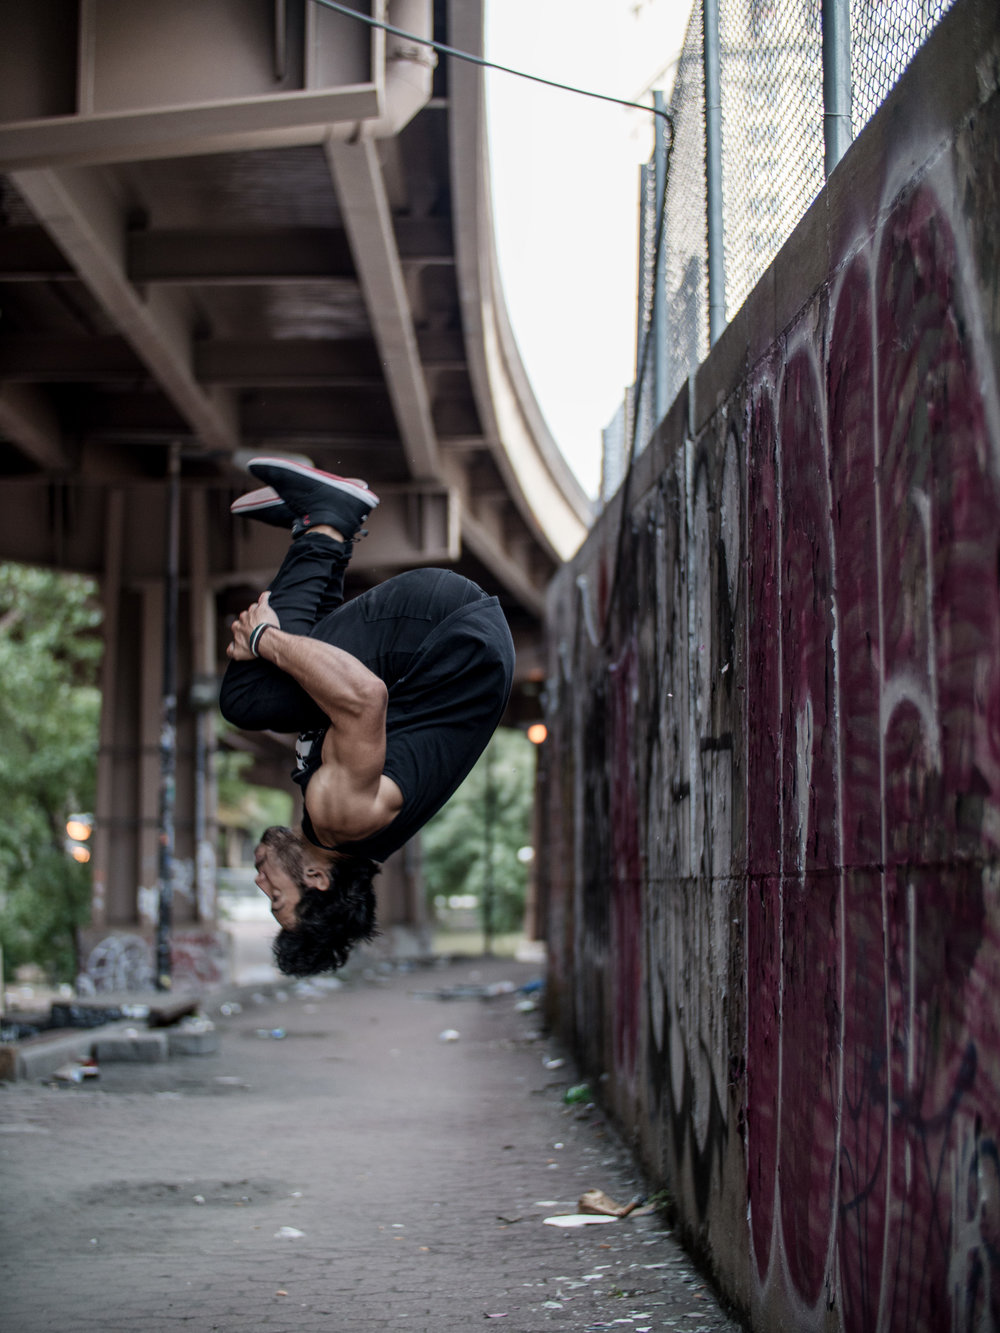 Mike-Araujo-Parkour-Motus-Projects-Parkour-Denims-New-York-NYC-NY-Manhattan-Vanguard-Backflip-Palmflip-flip-Brooklyn-Banks-Steve-Zavitz